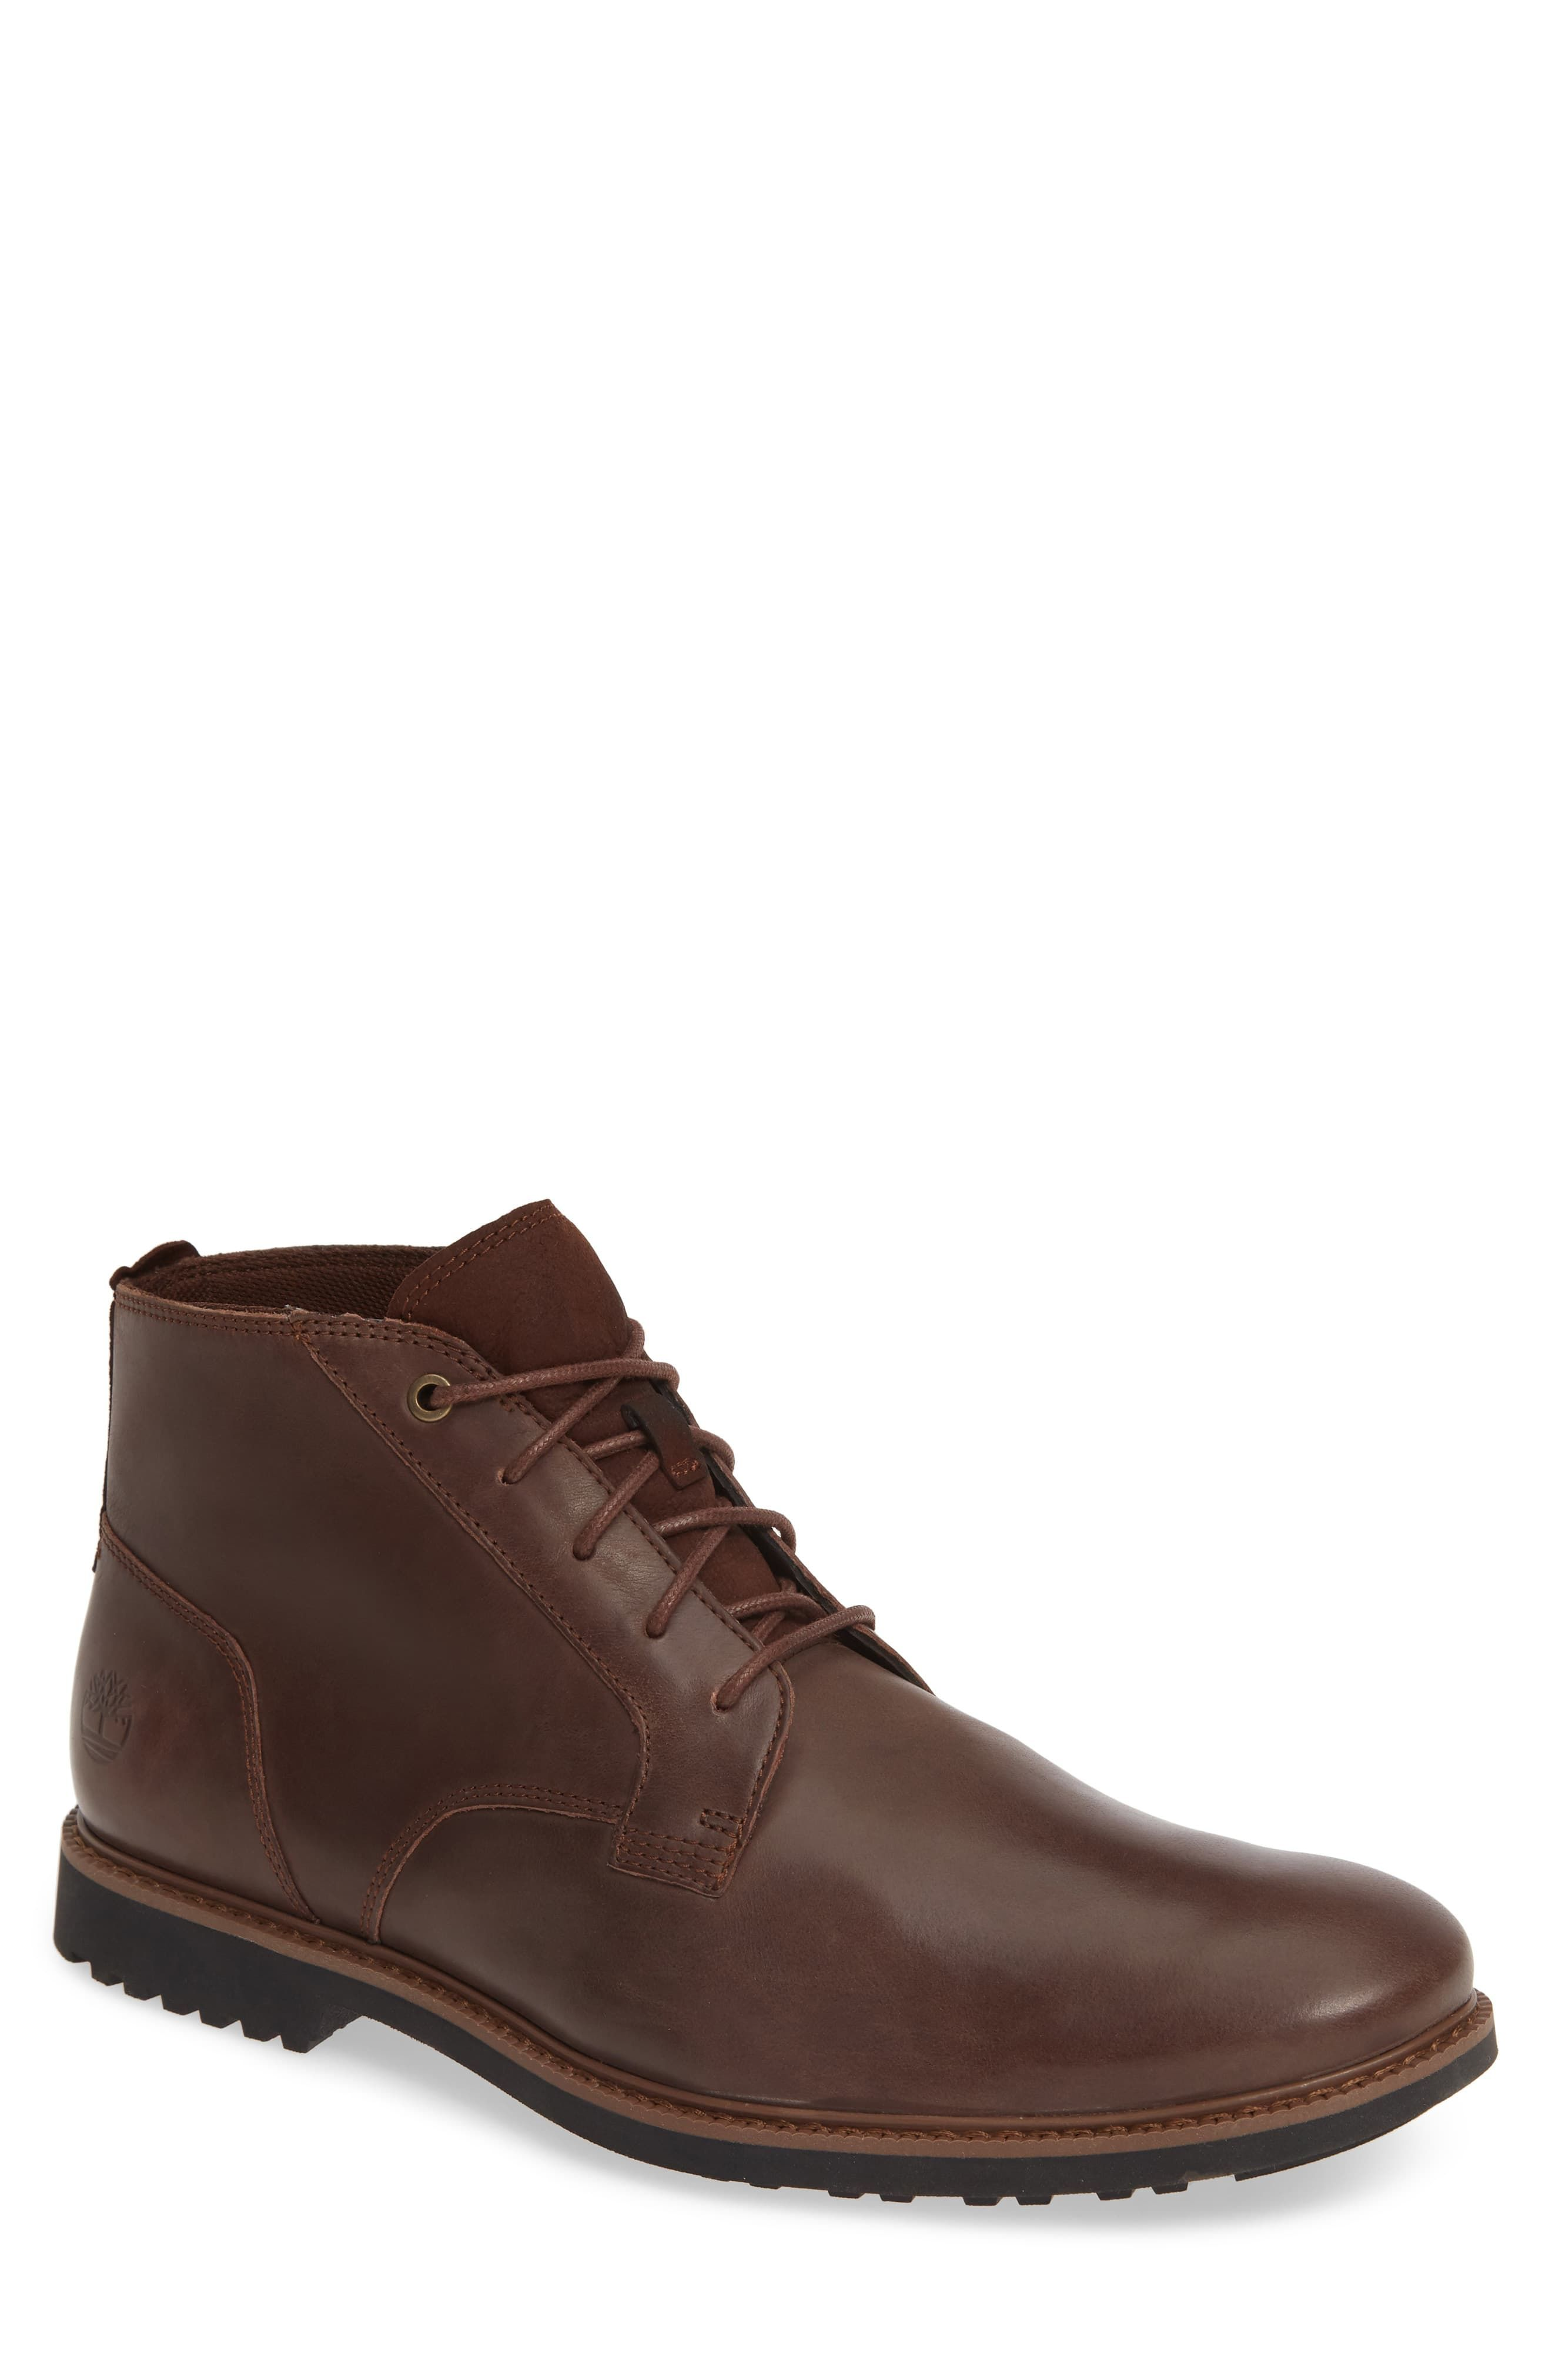 buy popular 9ca86 b6b58 Men s Timberland Lafayette Park Chukka Boot, Size 9 M - Brown